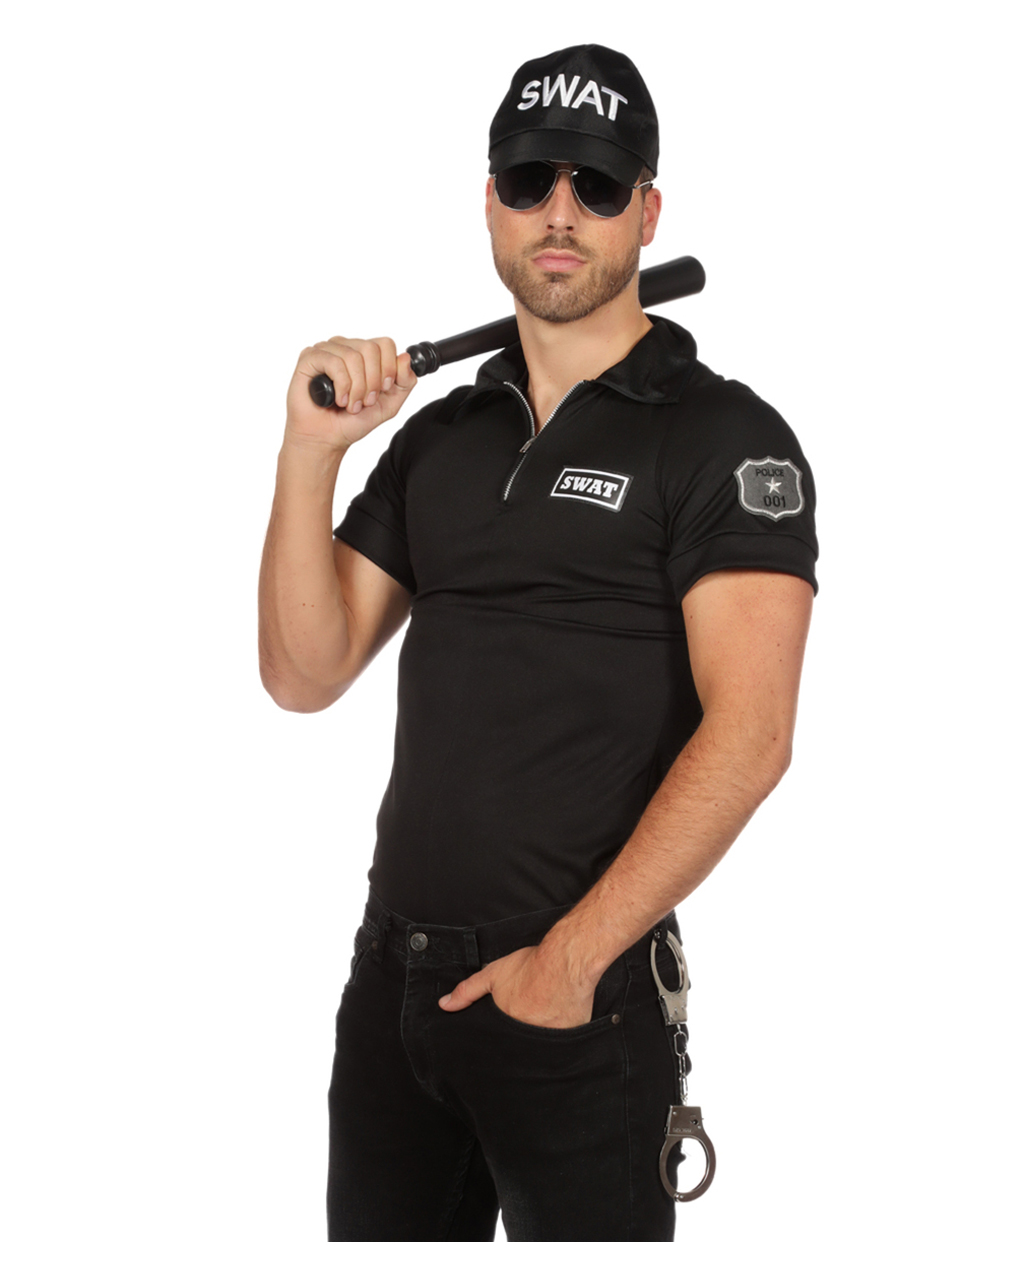 Manner Kostum Shirt Swat Agent Fur Fasching Karneval Universe